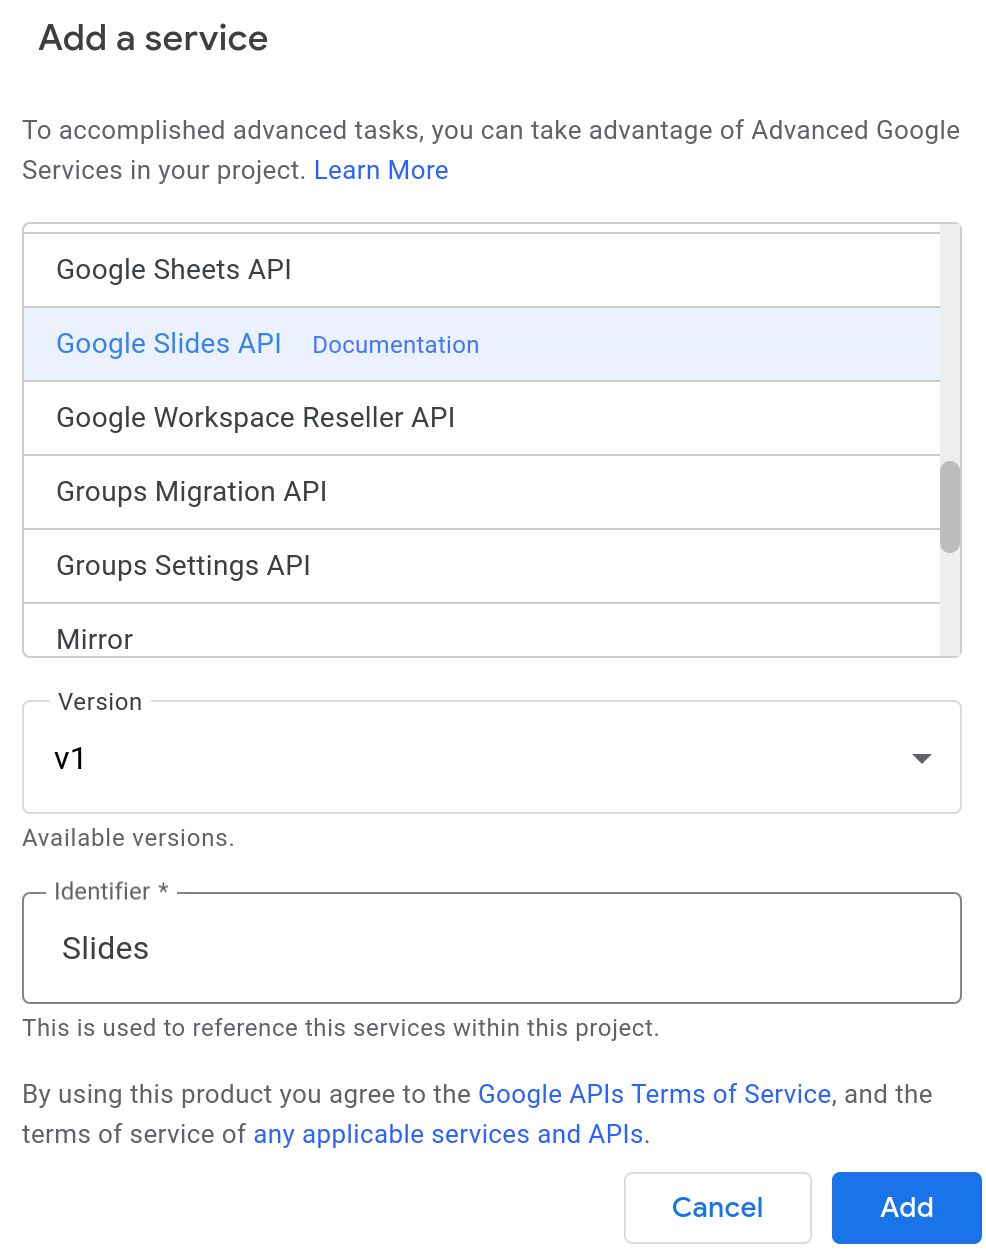 Screenshot of the Add Service dialog in the Apps Script editor.